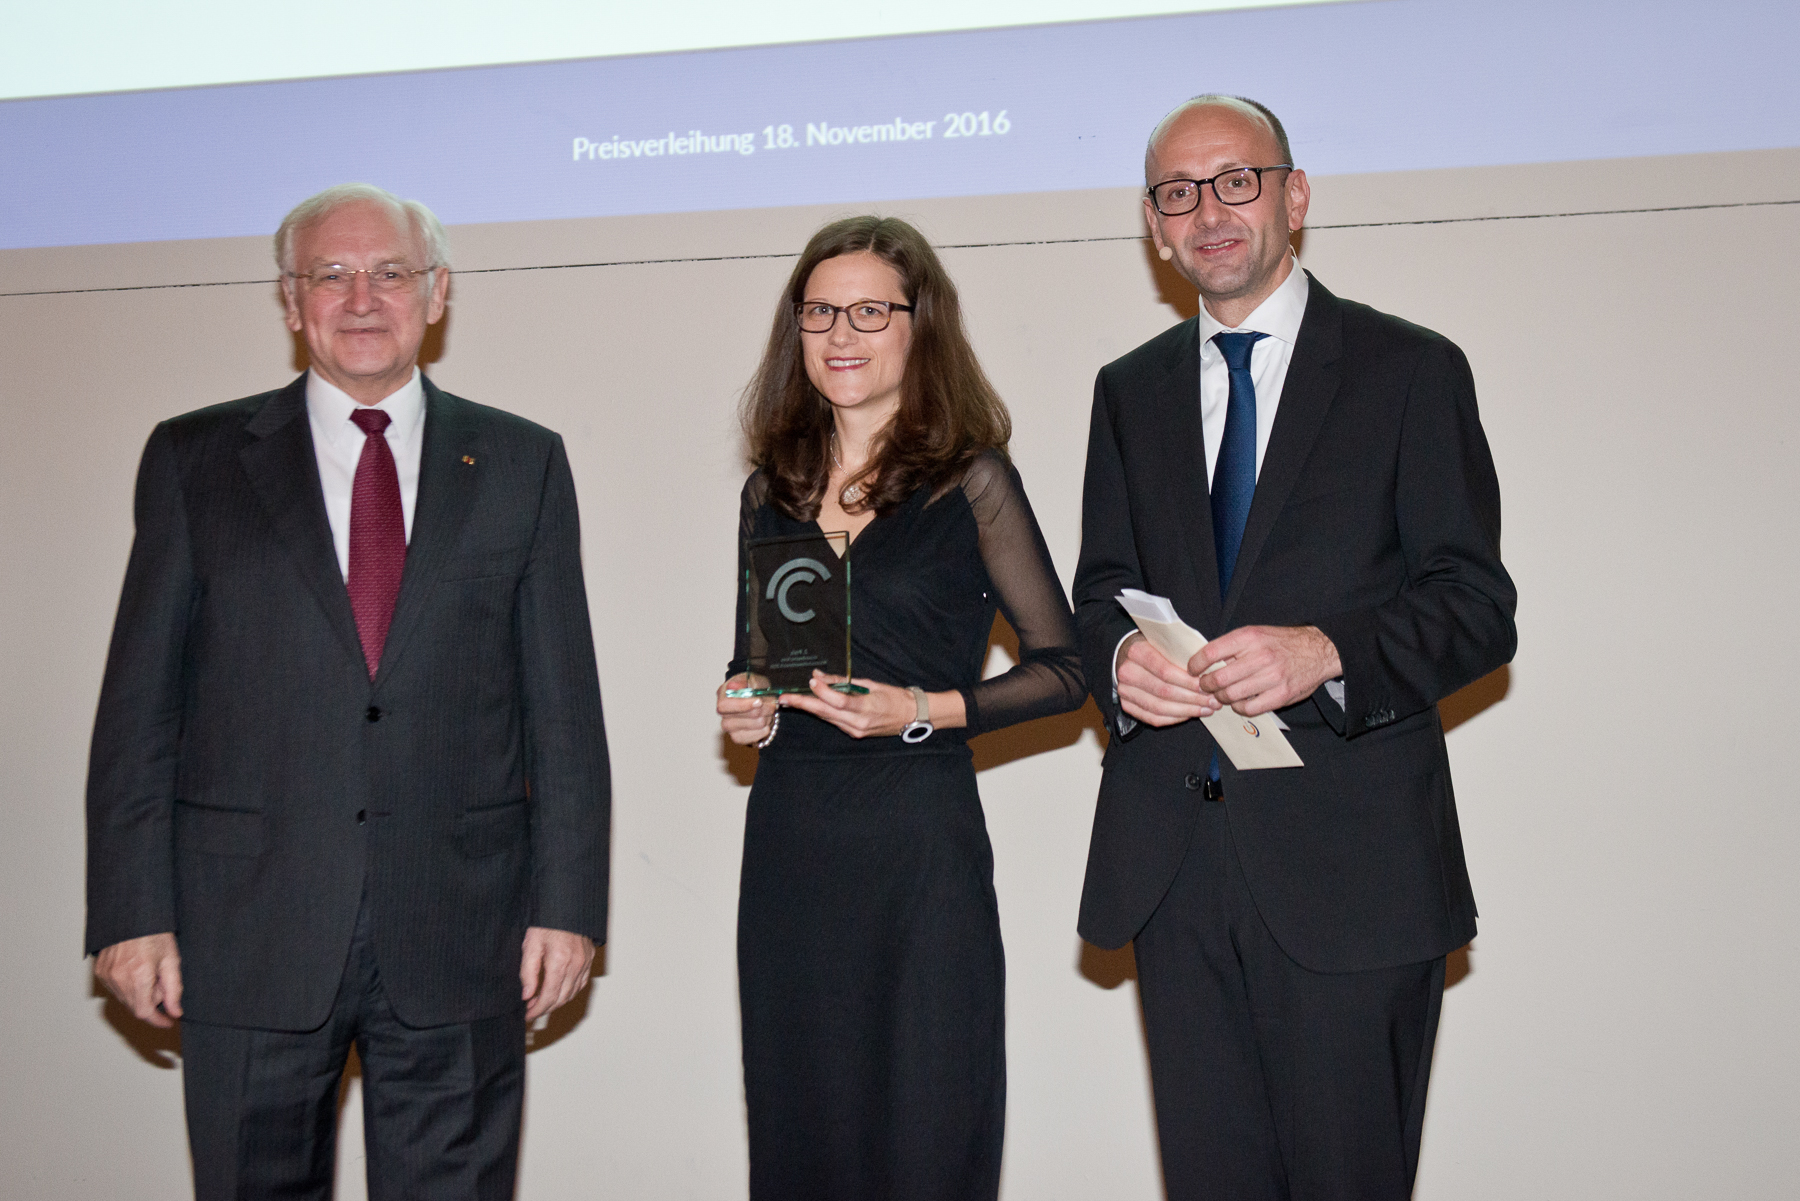 Prof. Siegfried Beck, Dr Andrea Braun (2nd prize), Prof. Lucas F. Flöther